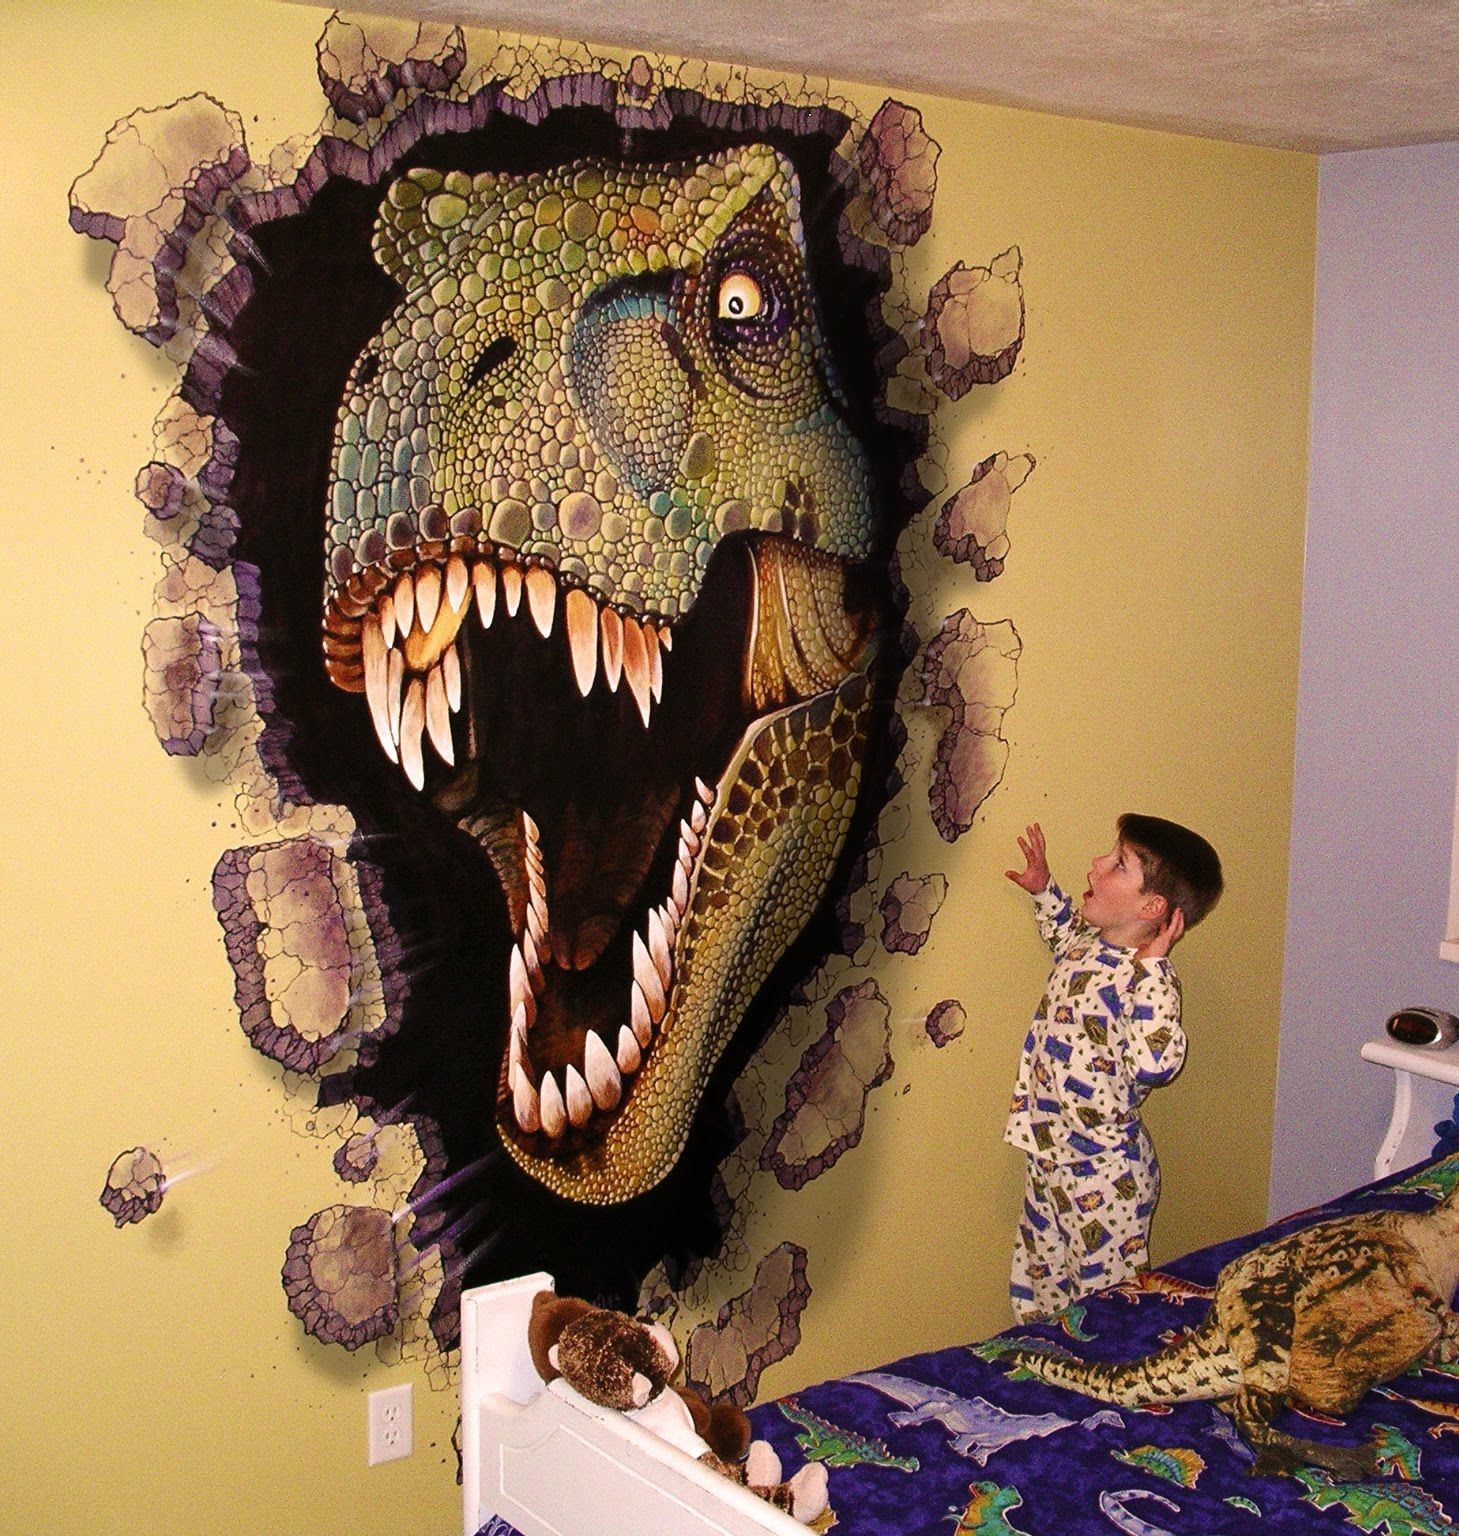 Boys Dinosaur Room Miles Woods Art Wall Murals Jr 39 S Room Ideas Pinterest Boys Dinosaur